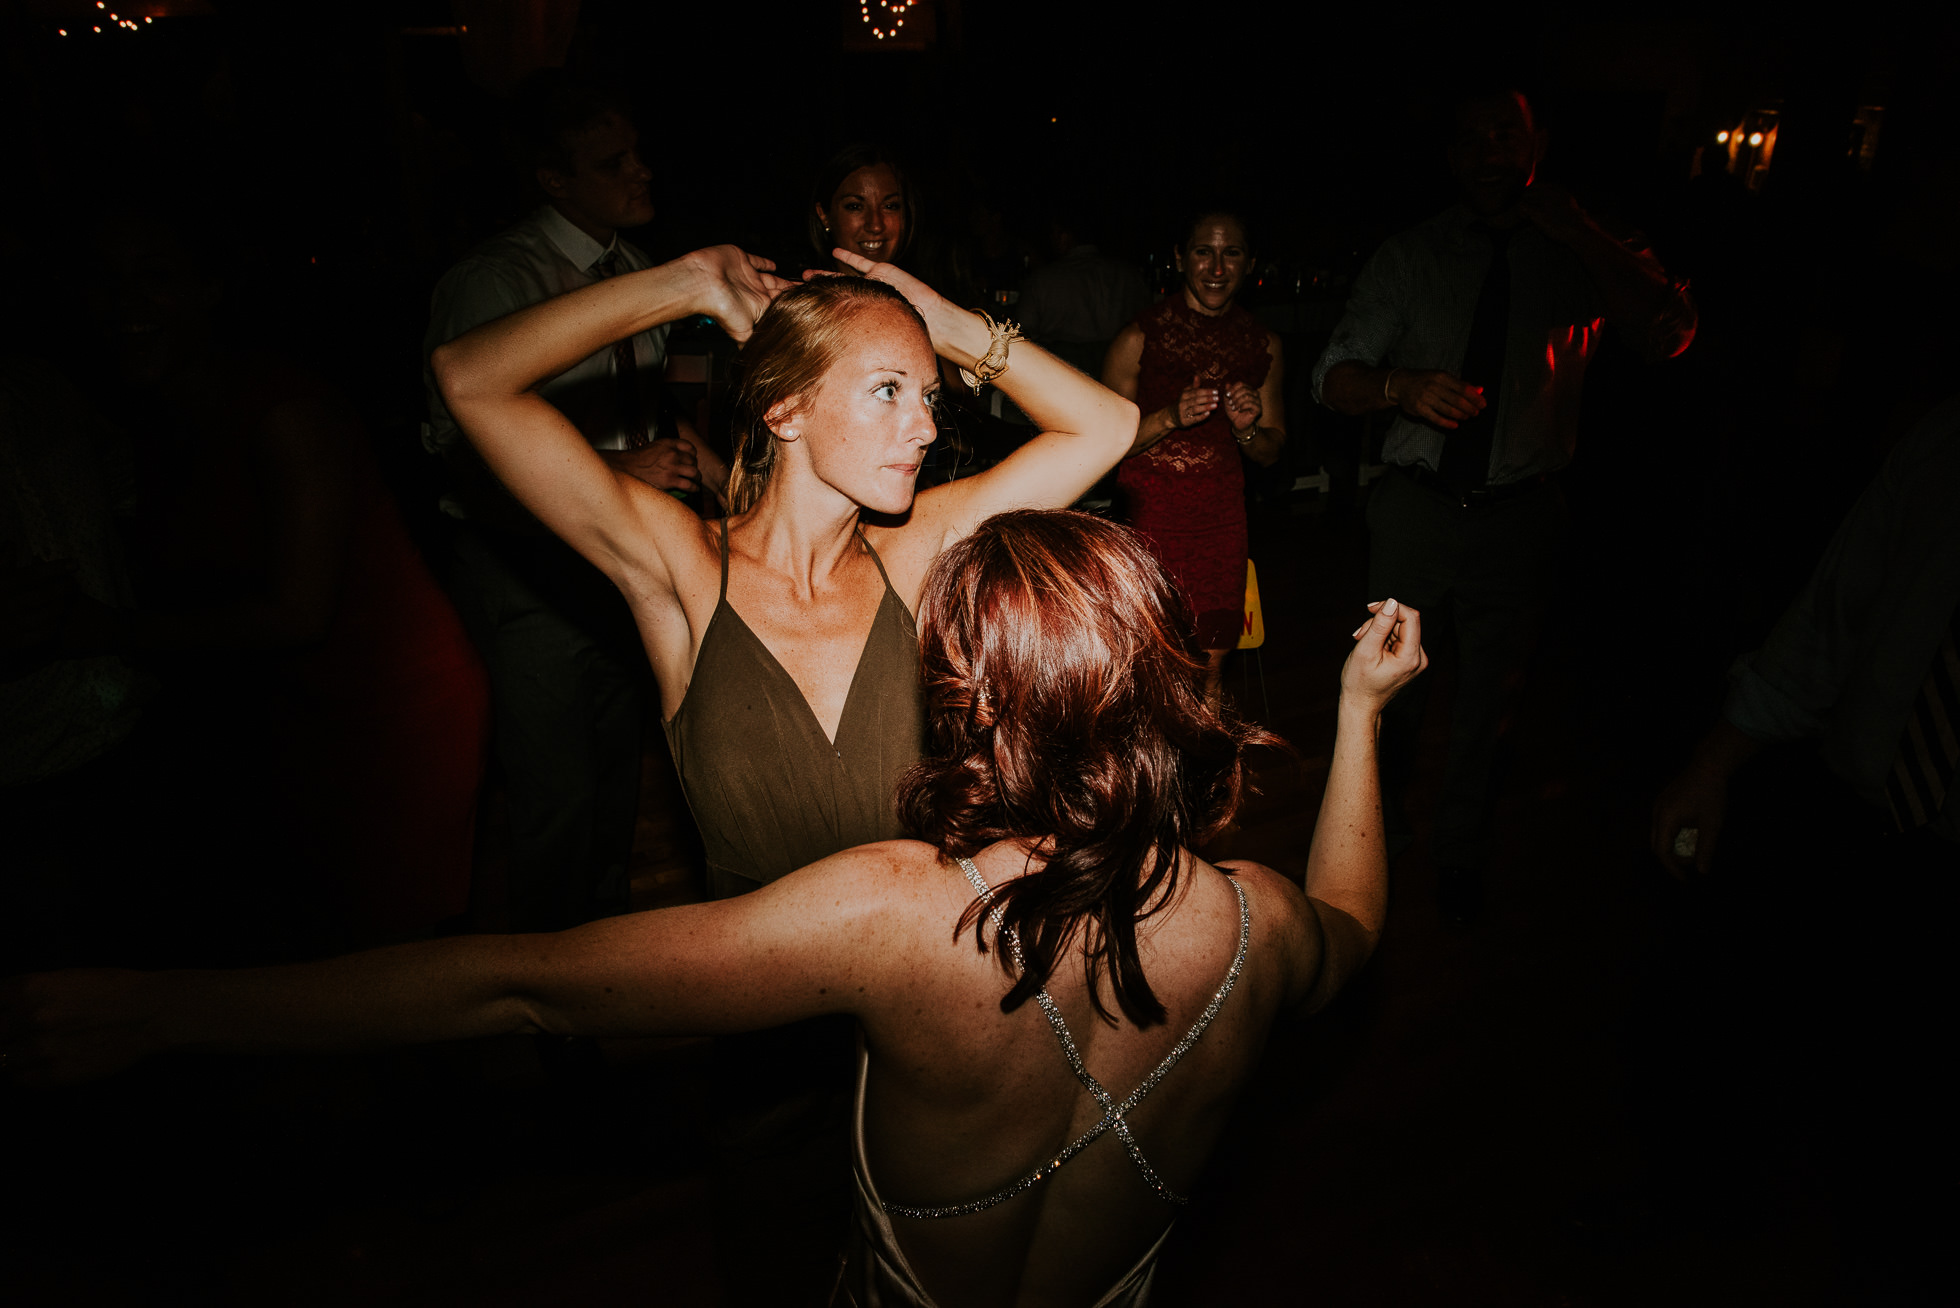 girls dancing at olde tater barn wedding in central bridge, ny photographed by traverse the tides